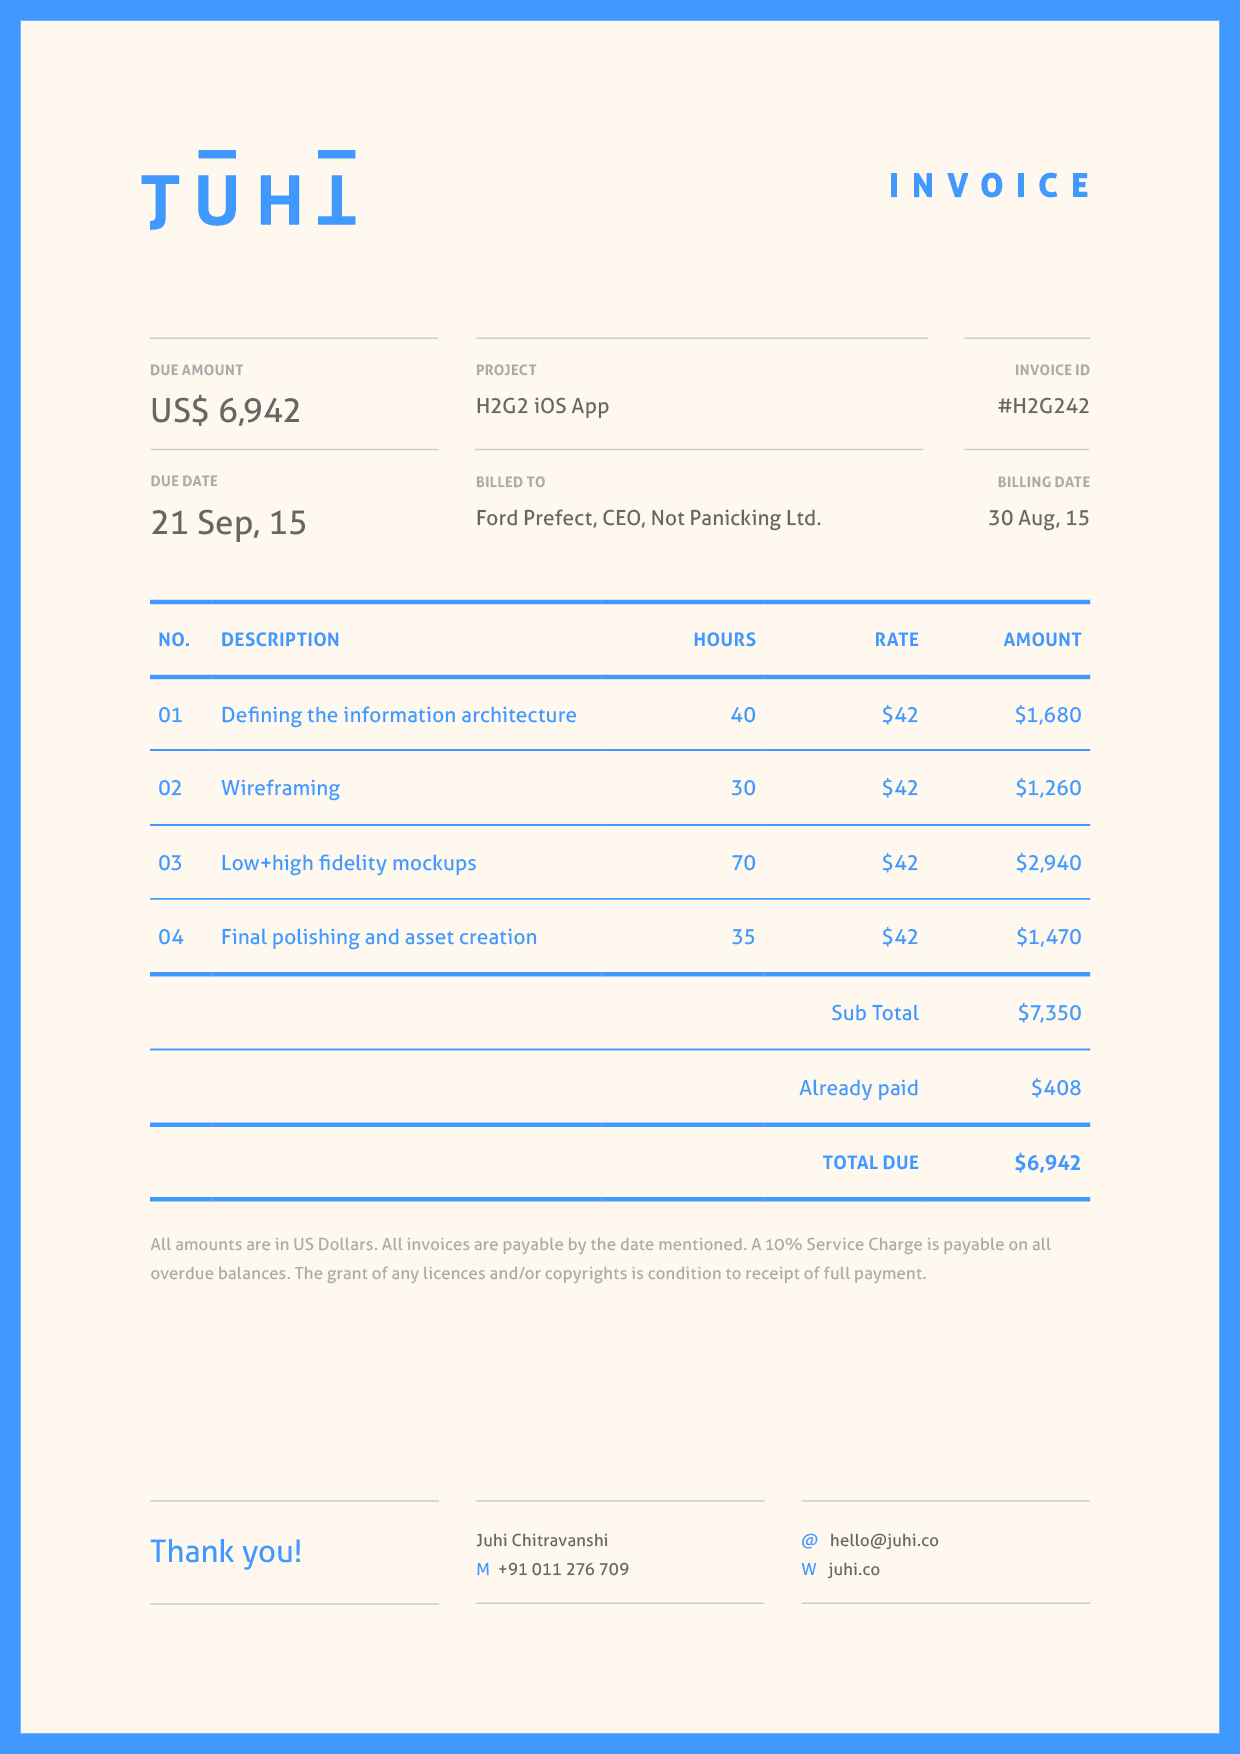 Angkajituus  Pleasant Dont Hold Back On Your Invoice  Inspiring Designs  With Likable Invoice By Juhi Chitravanshi Follow With Awesome Receipt Layout Also Generic Sales Receipt In Addition How To Manage Receipts And Delivery Receipt Email As Well As Receipt Design Additionally Ocr Receipt Scanner From Inspirationfeedcom With Angkajituus  Likable Dont Hold Back On Your Invoice  Inspiring Designs  With Awesome Invoice By Juhi Chitravanshi Follow And Pleasant Receipt Layout Also Generic Sales Receipt In Addition How To Manage Receipts From Inspirationfeedcom